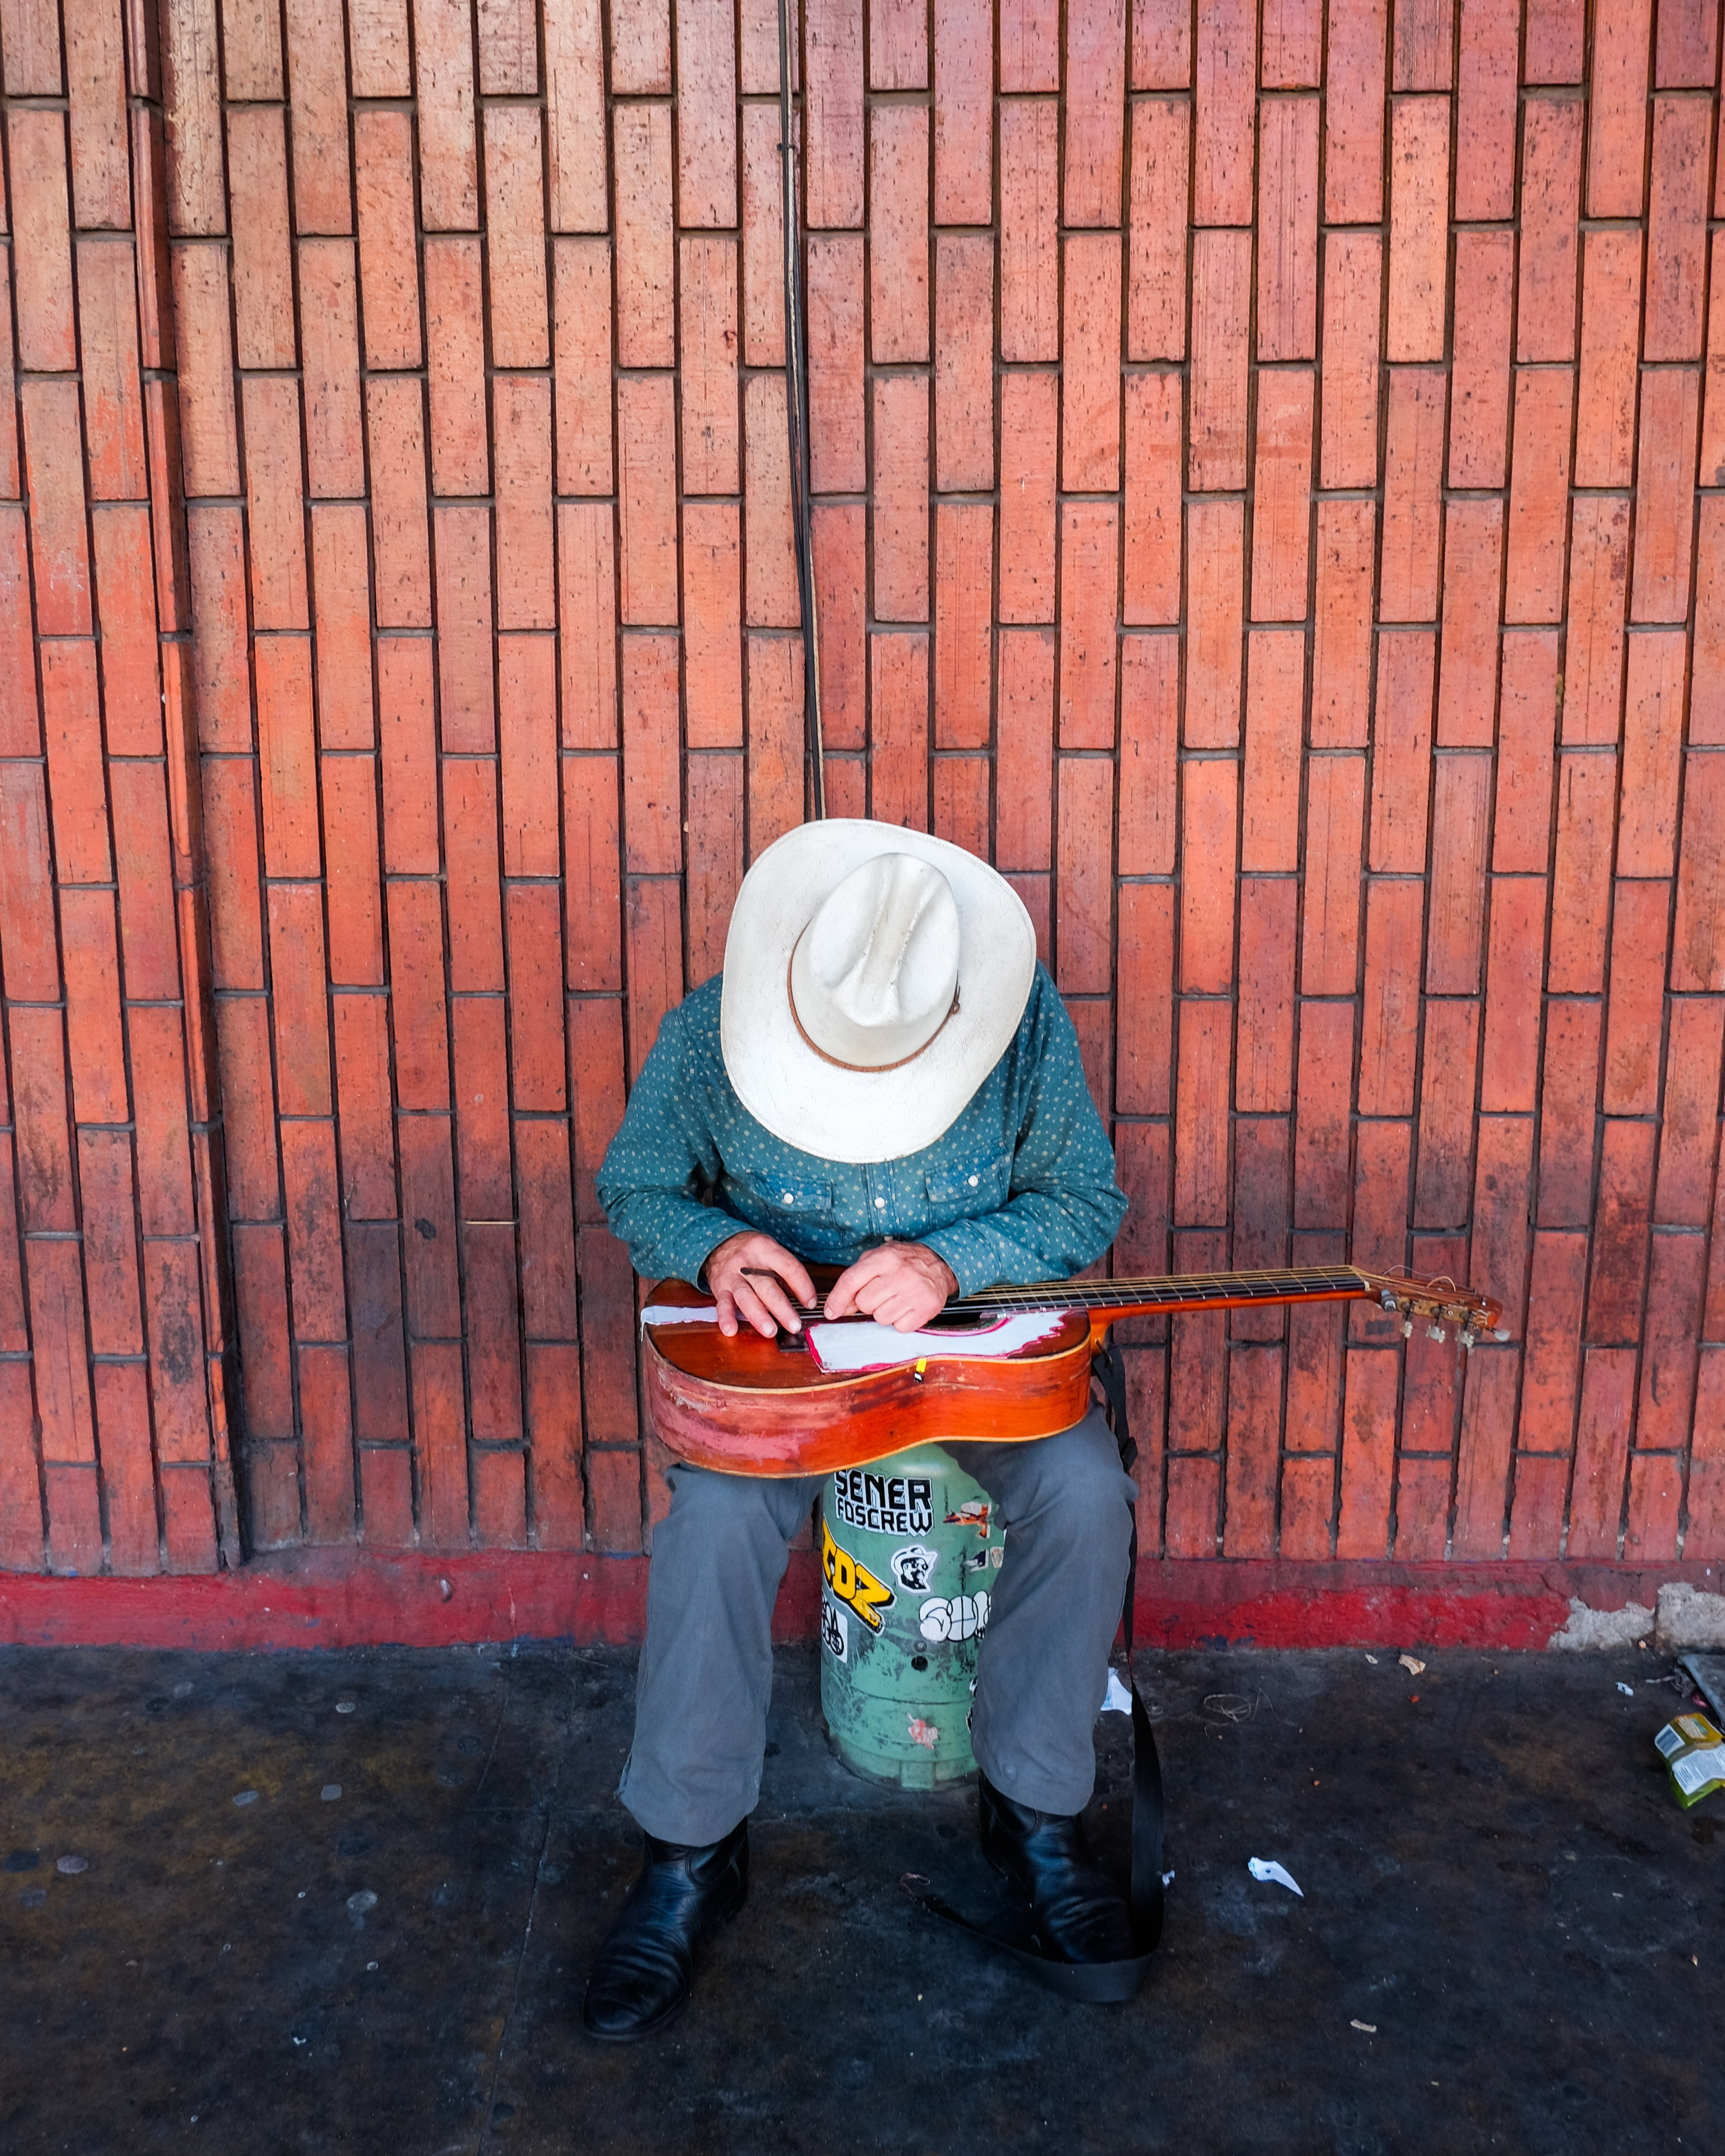 This image was easy as the person was focused on fixing his guitar strings whilst wearing a wide brimmed hat. I had plenty of time to compose the shot and get it right. I took two images altogether. This one and another from a few steps further back. I was there for about 6 seconds total and he was not aware of me in the slightest.